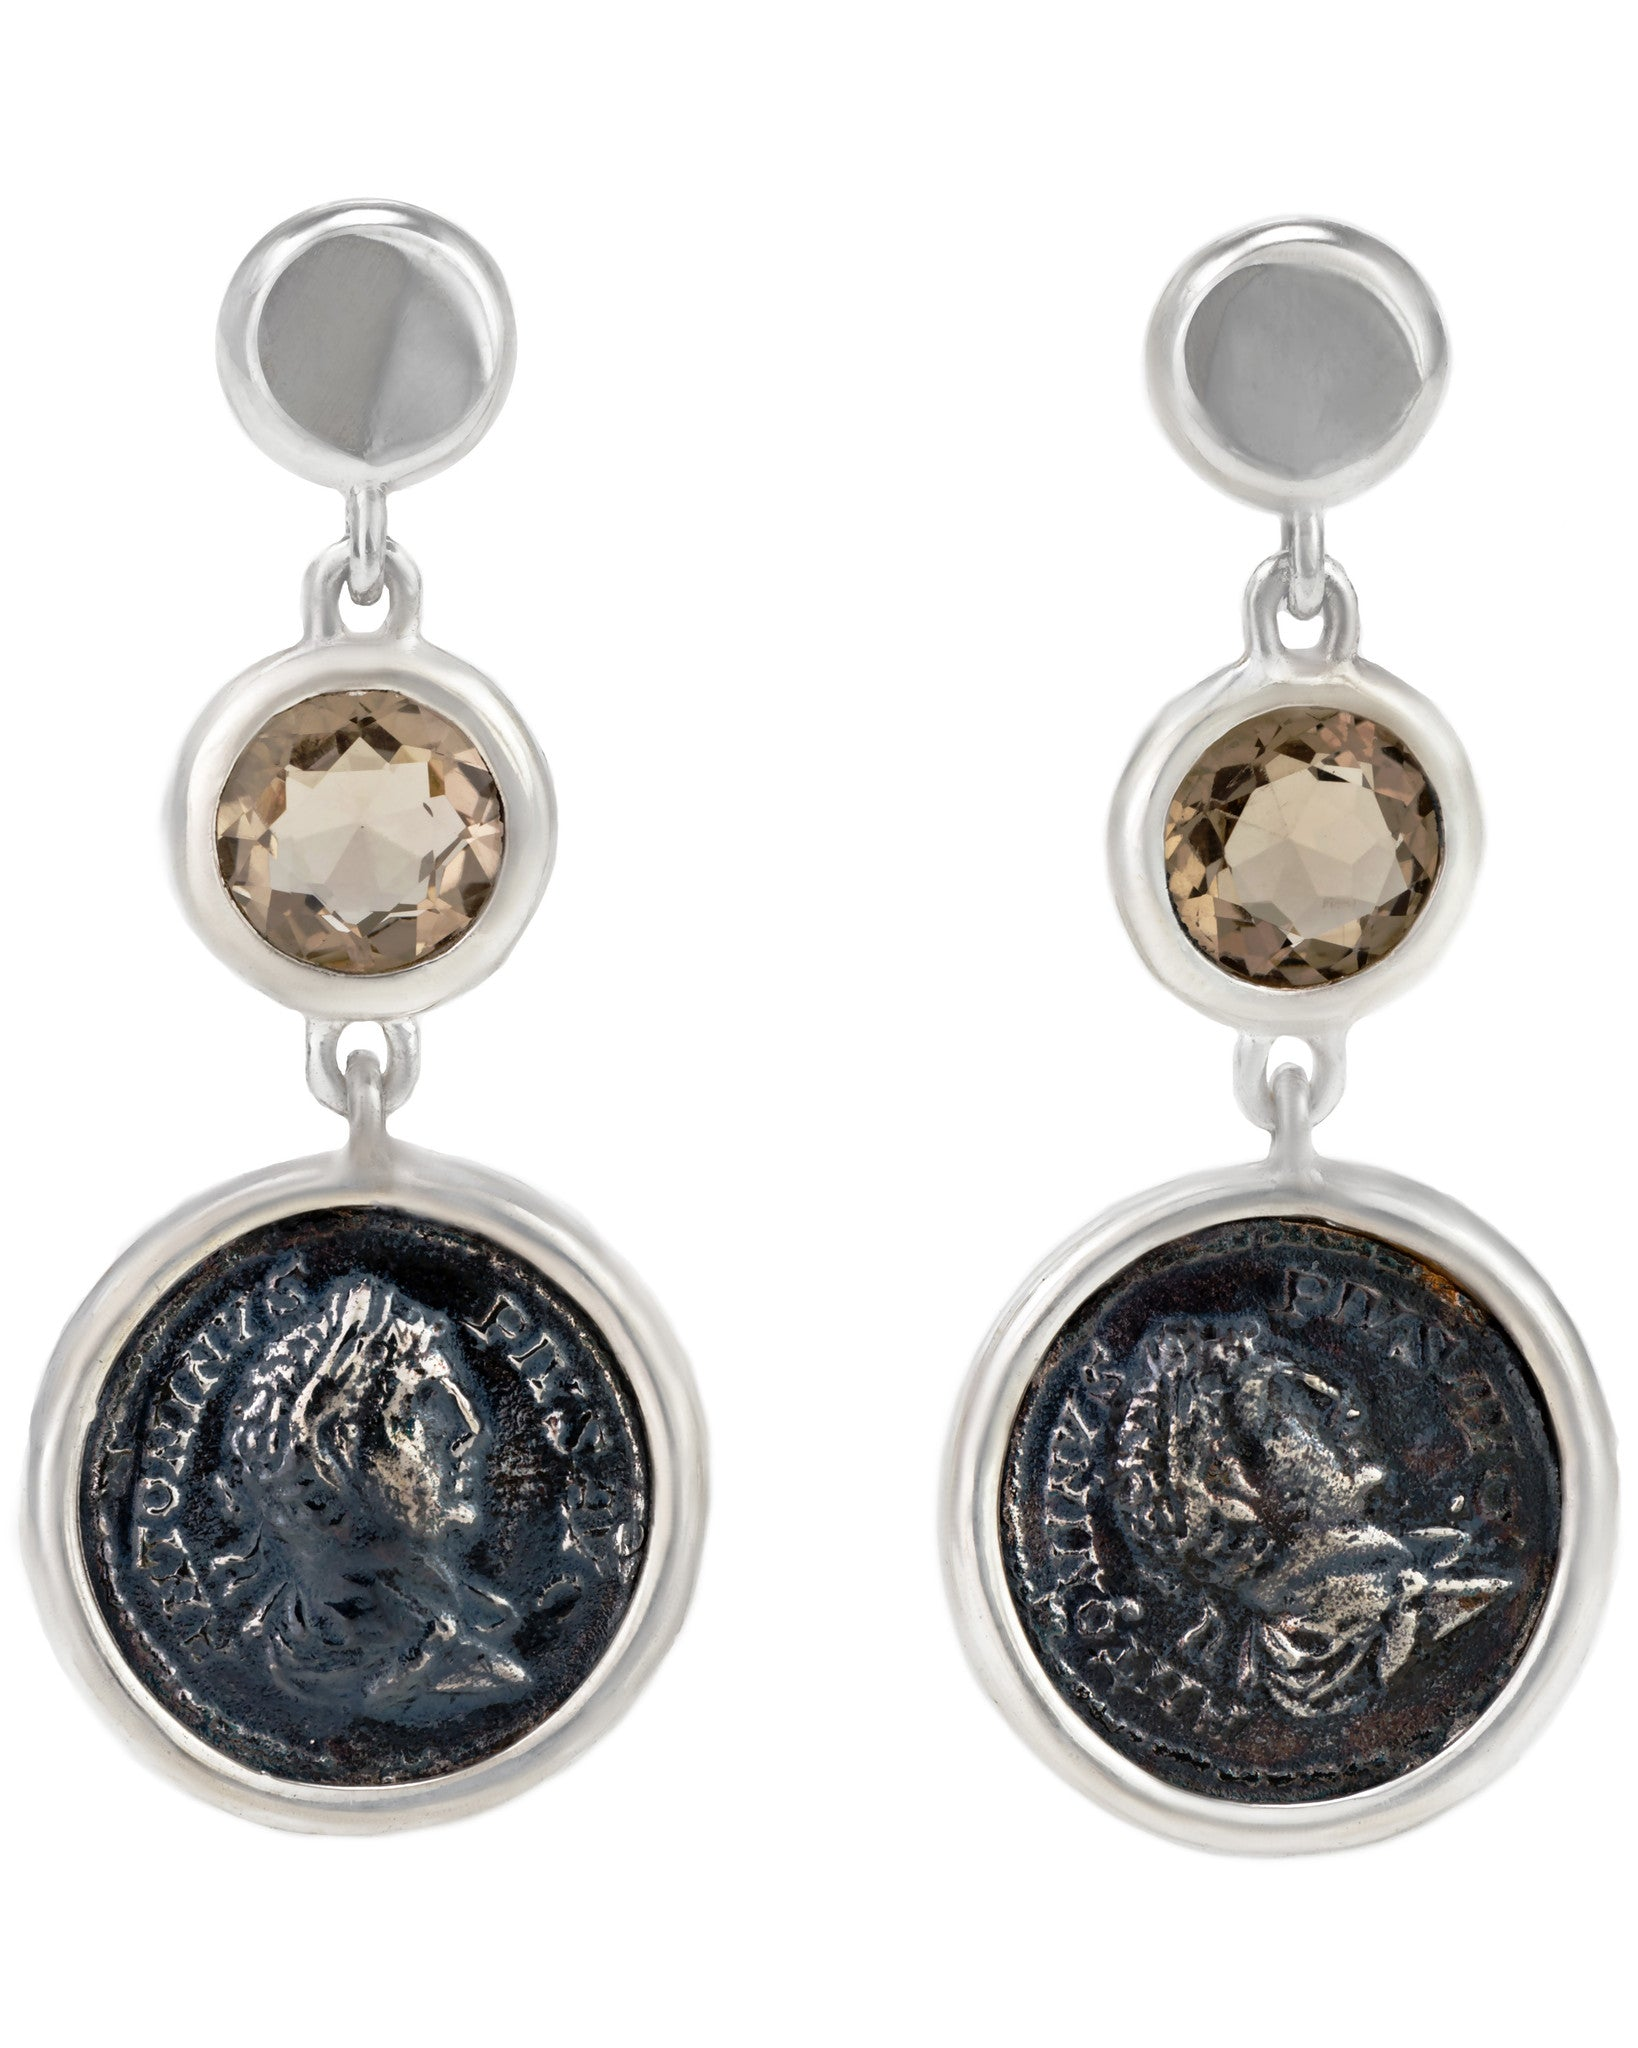 Legacy Vivace Sterling Silver Earrings w/ Medium Antique Pius Coins and Smoky Topaz (3.00 ct.)